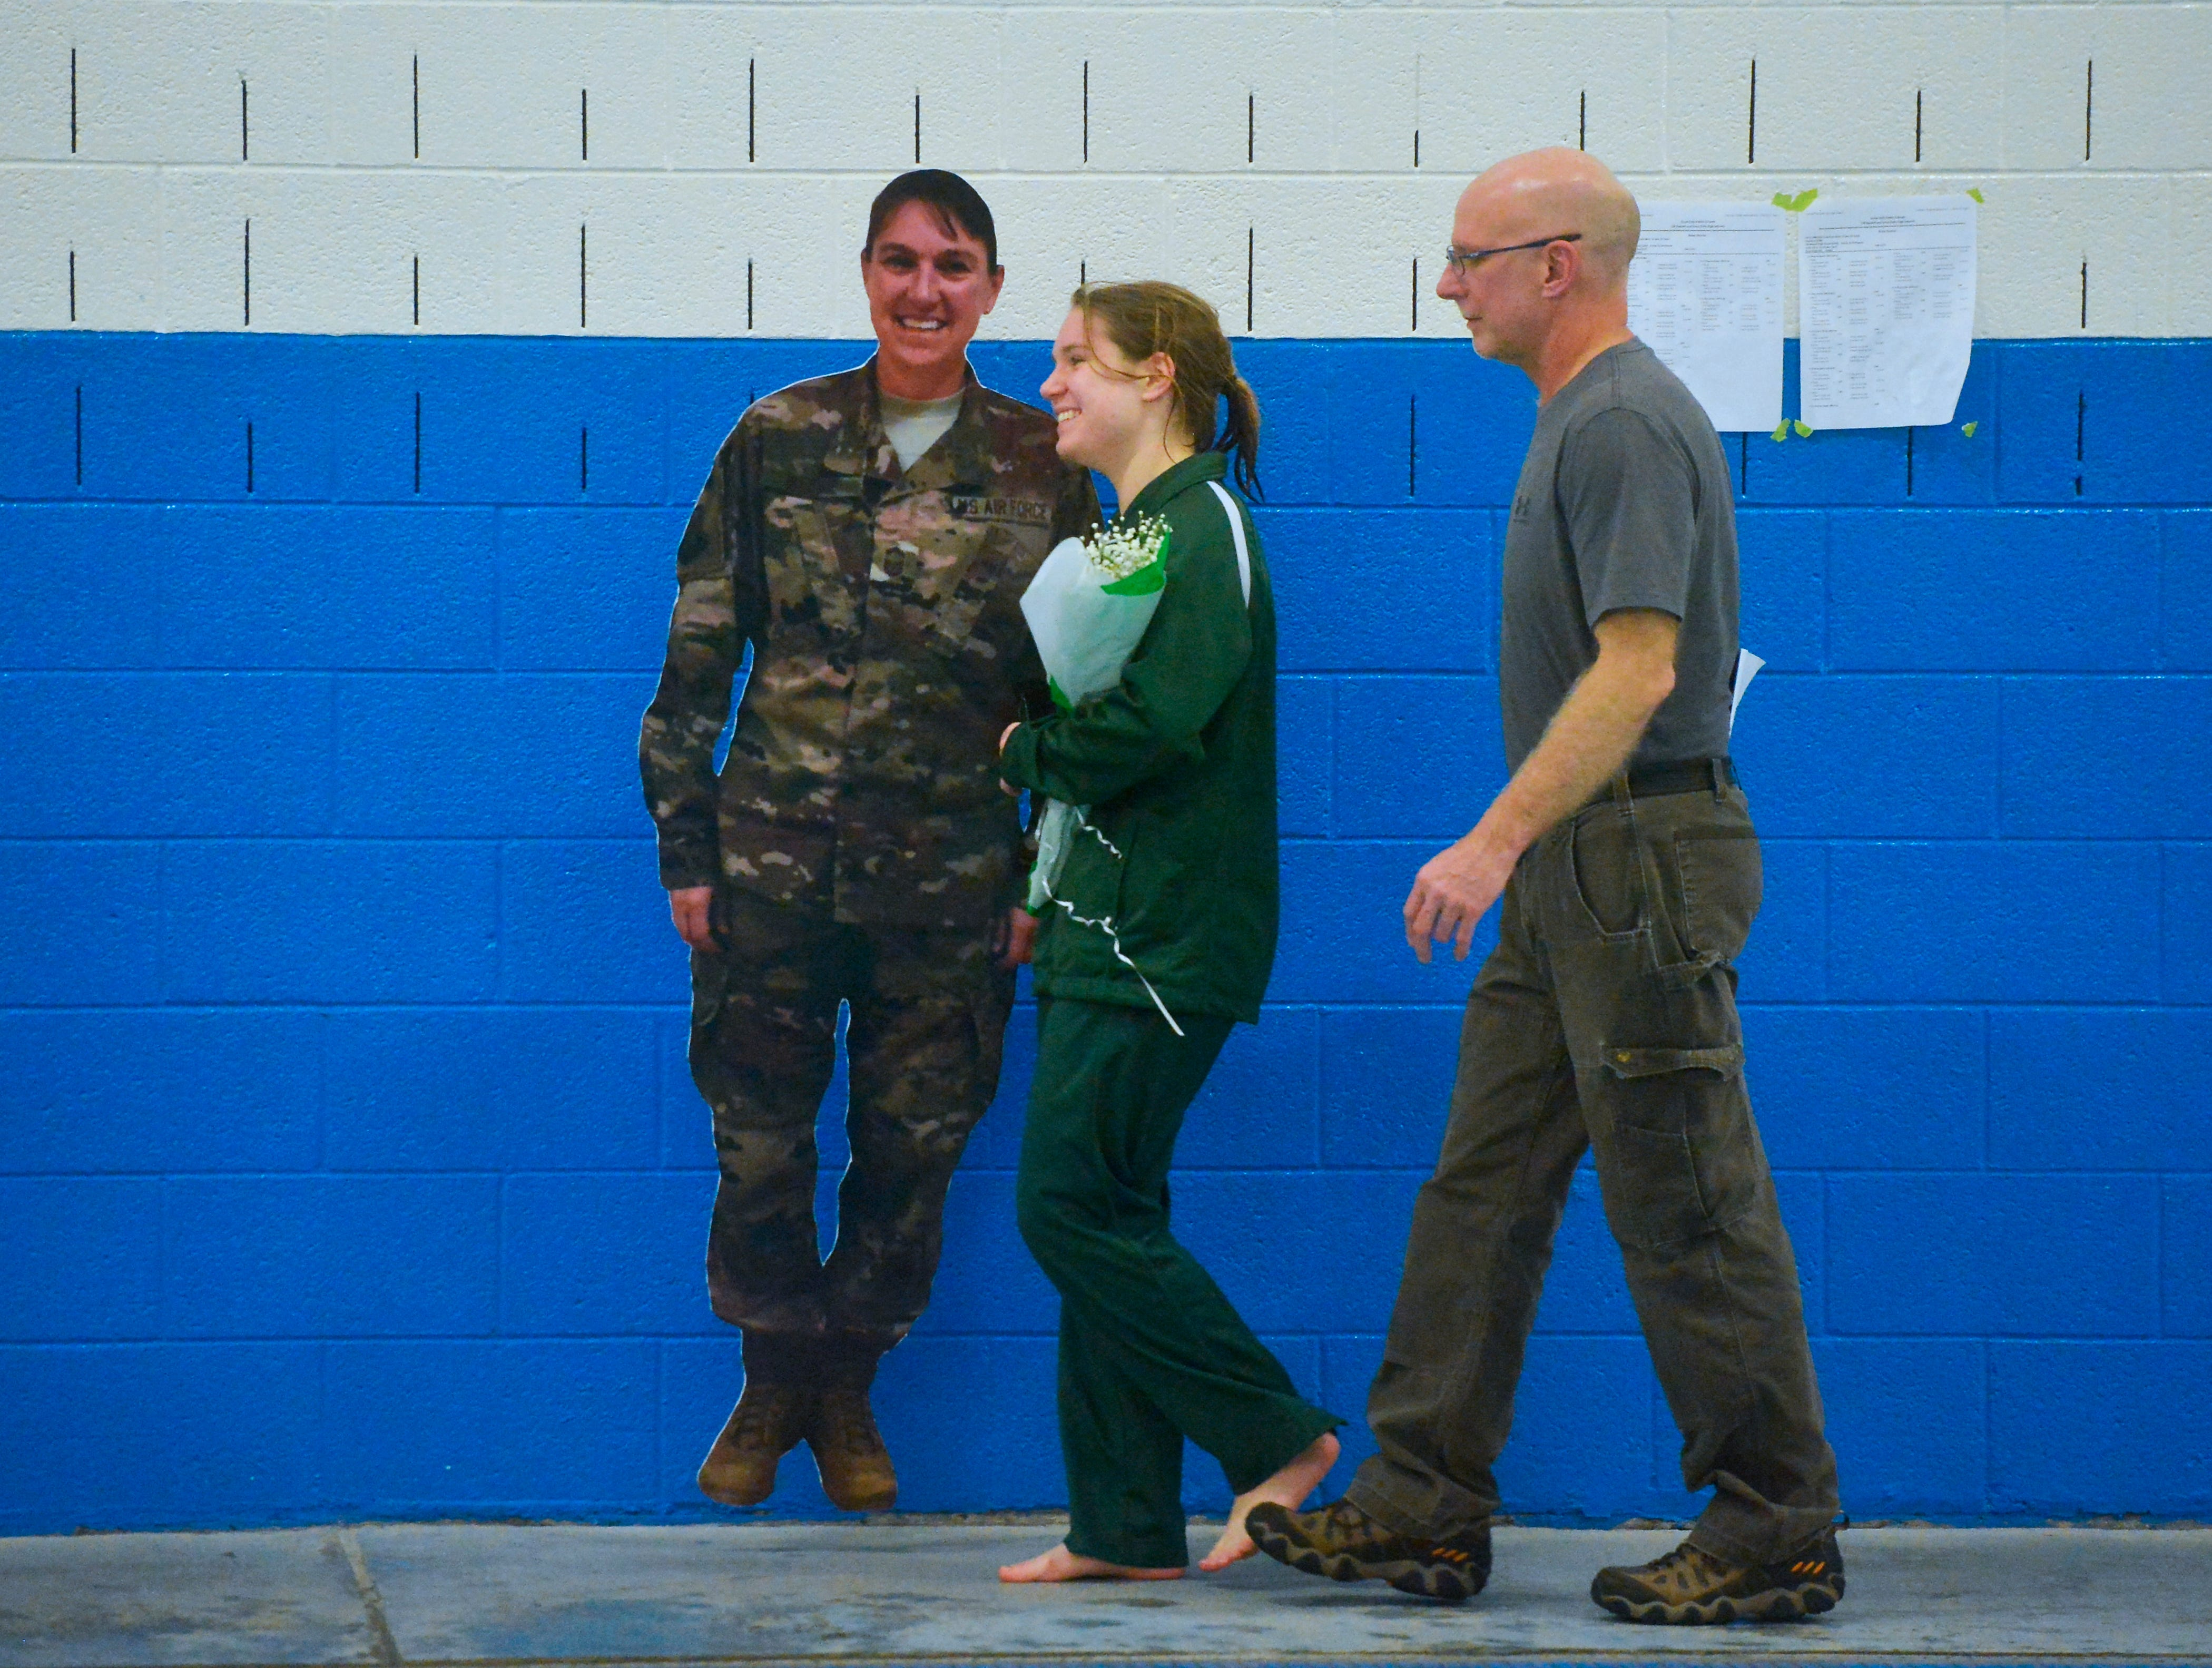 CMR senior swimmer Darlene Westie walks with her father Kevin and a life size cutout of her mother Amber, who is deployed overseas with the U.S. Air Force, during the senior night ceremony at the crosstown swim meet, Thursday evening.